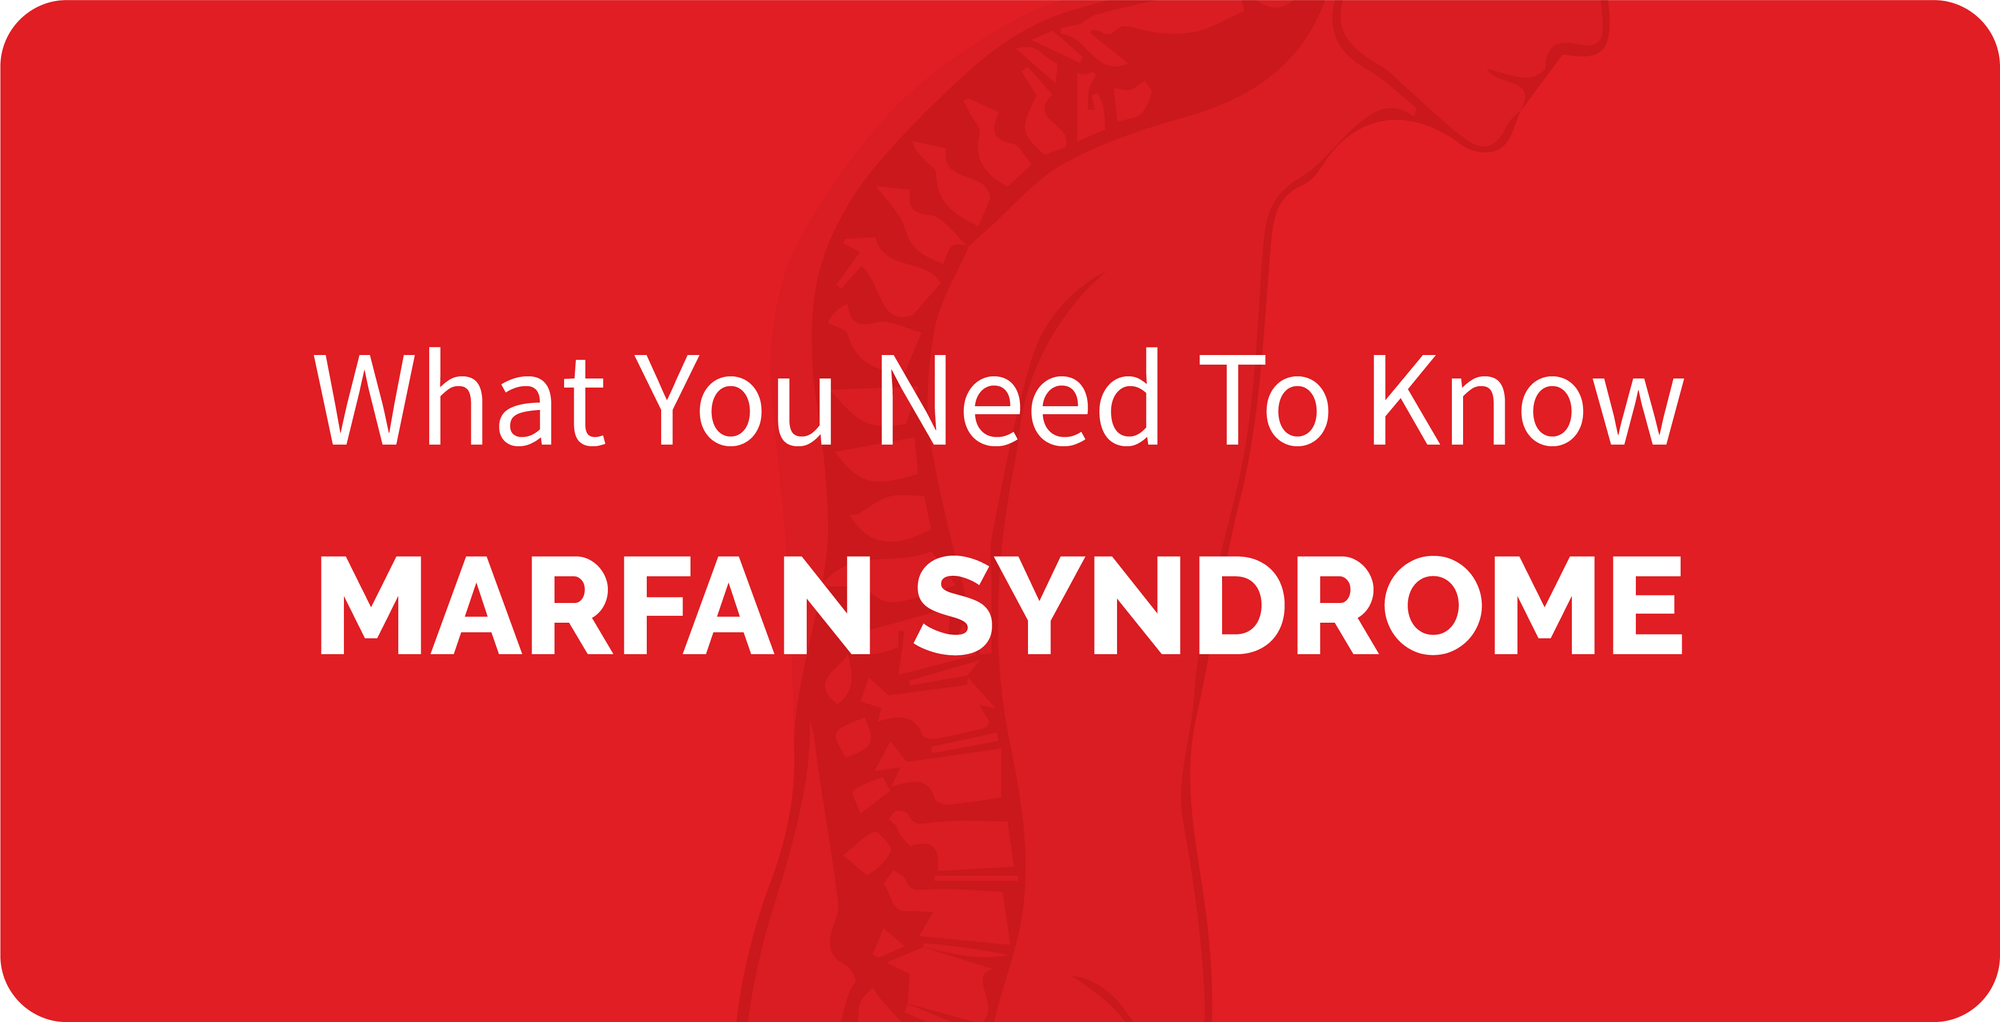 The cover of 'Rare Disease Series #6 MARFAN SYNDROME'